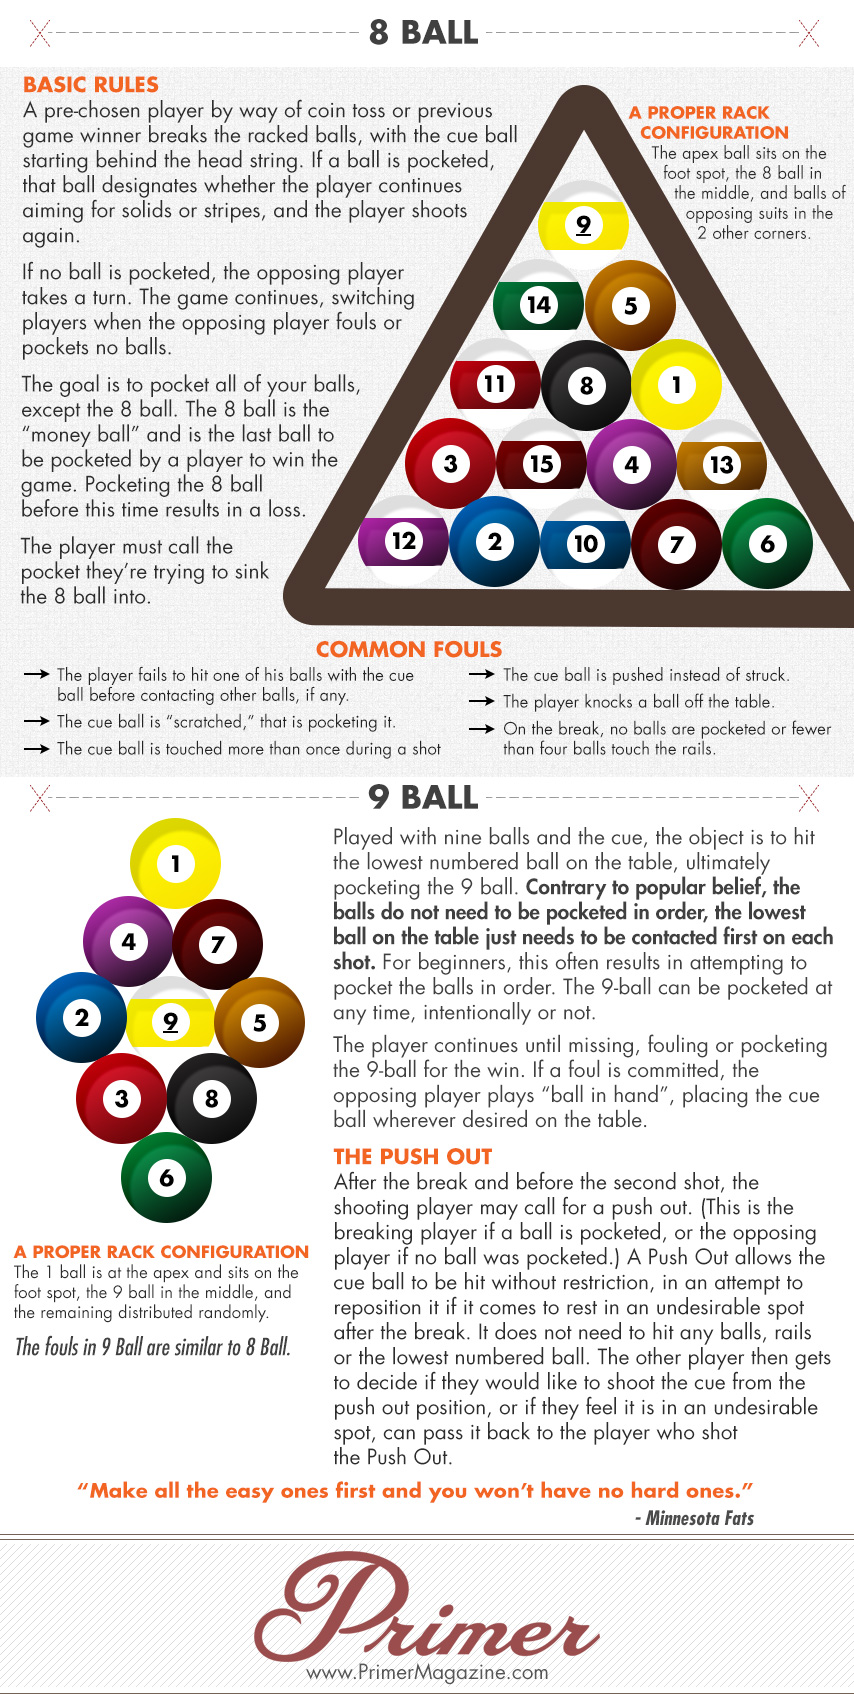 Image Result For Ball Scratch Rules